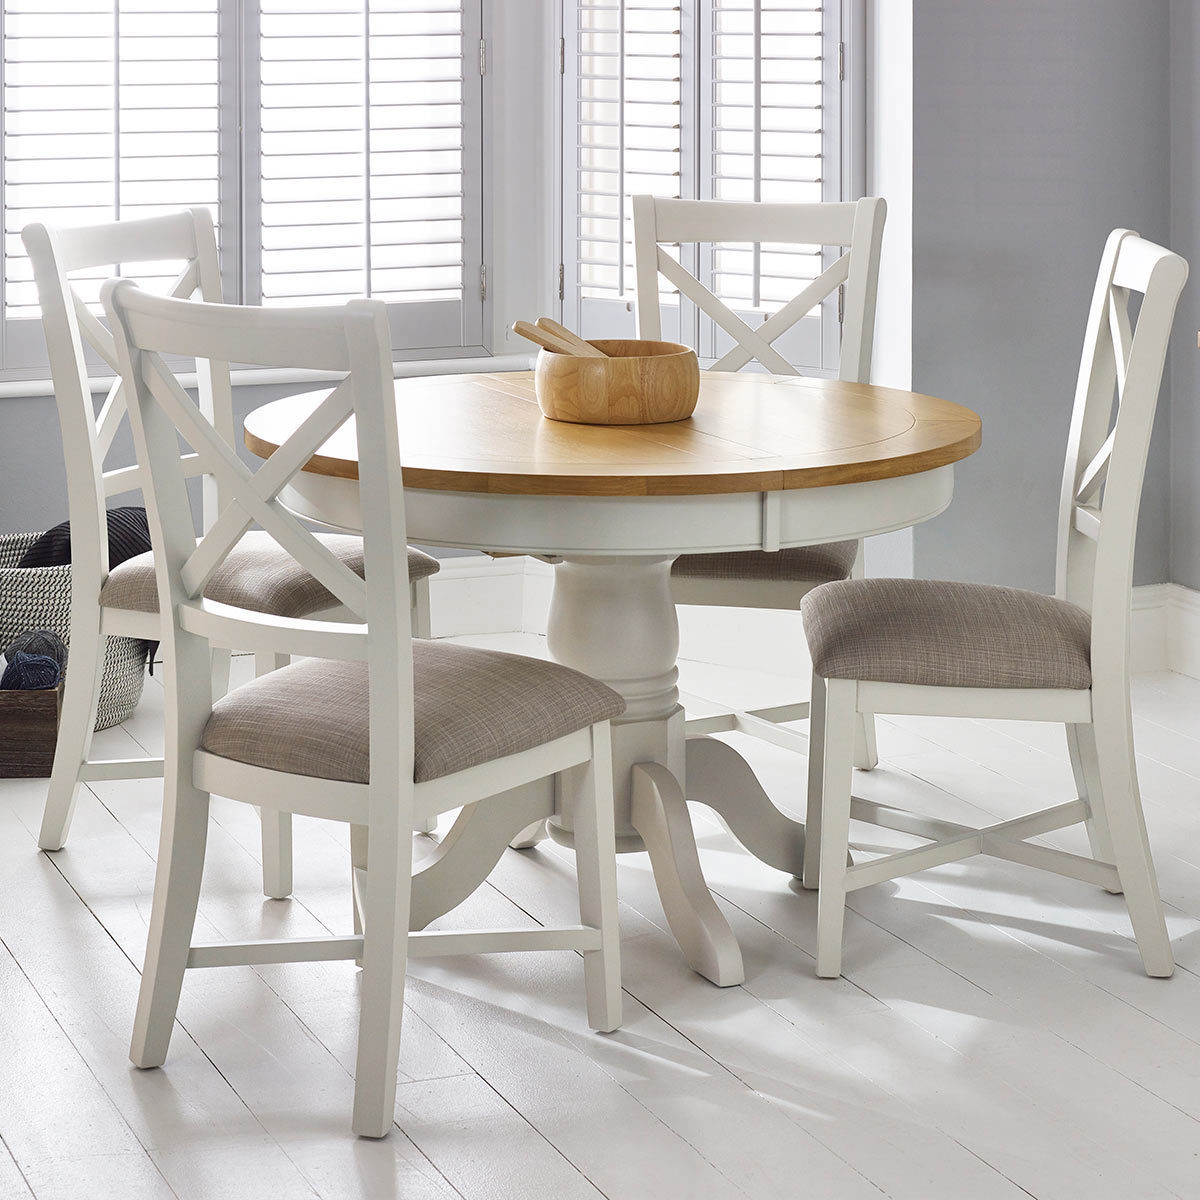 Use a round extendable dining table to save space in your dining room